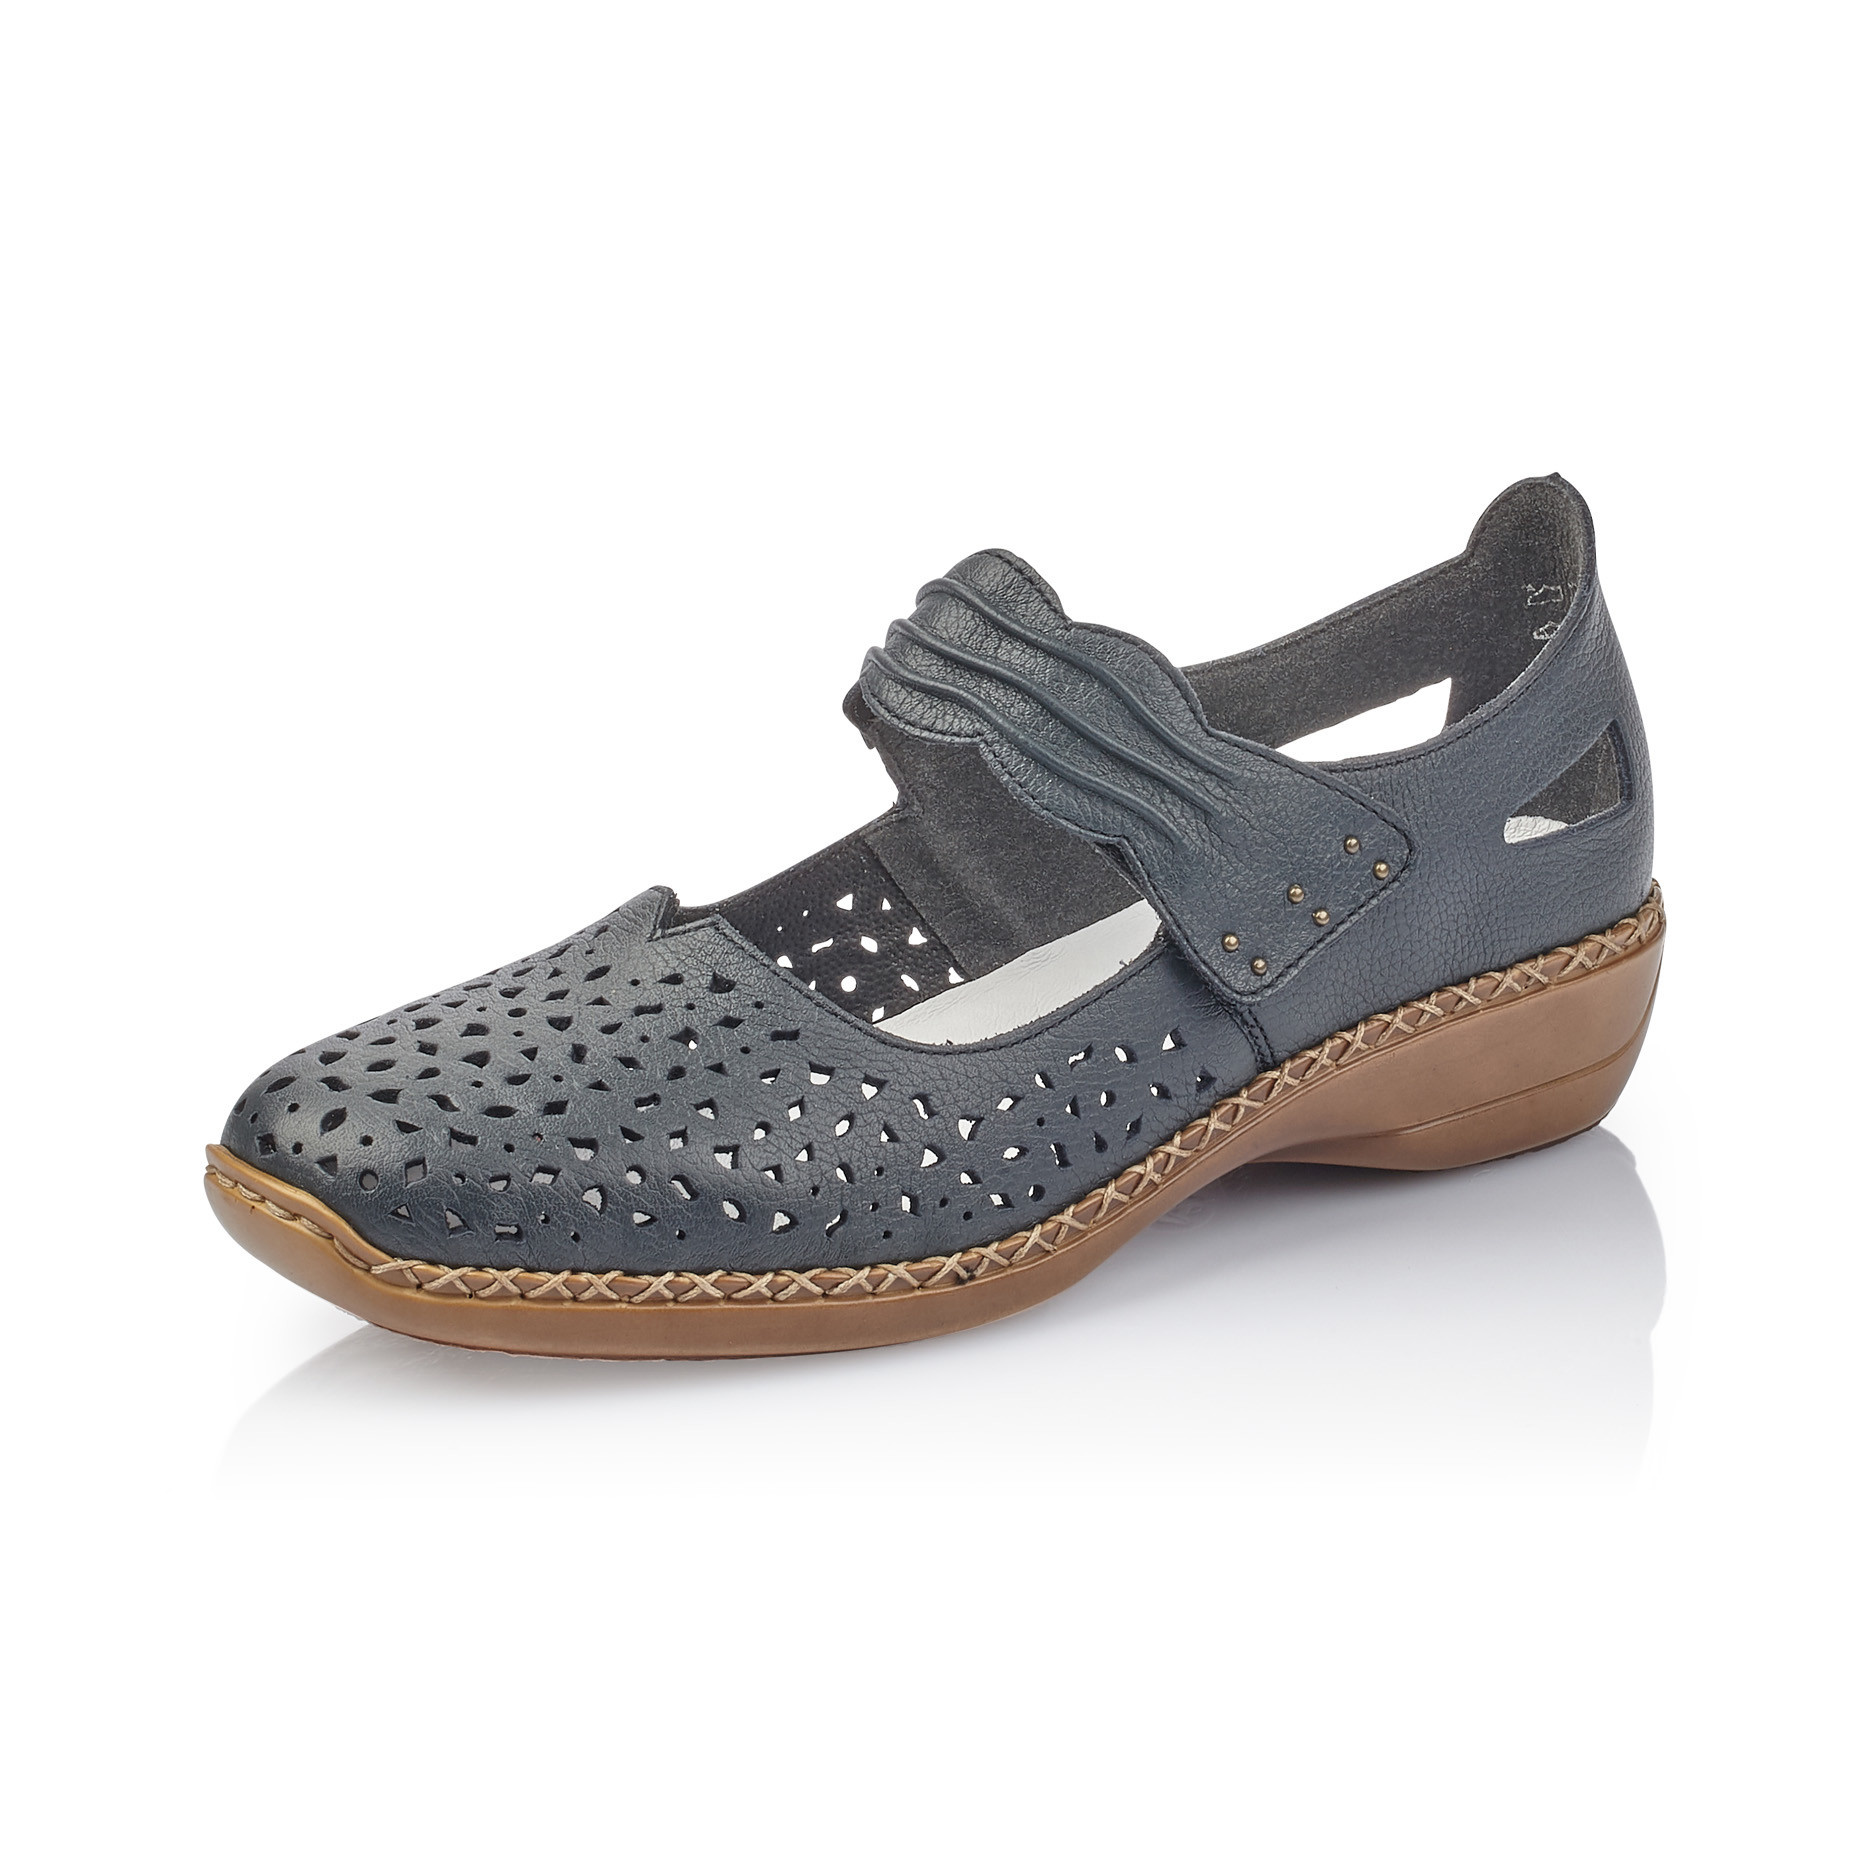 Rieker 41399-14 only size 36